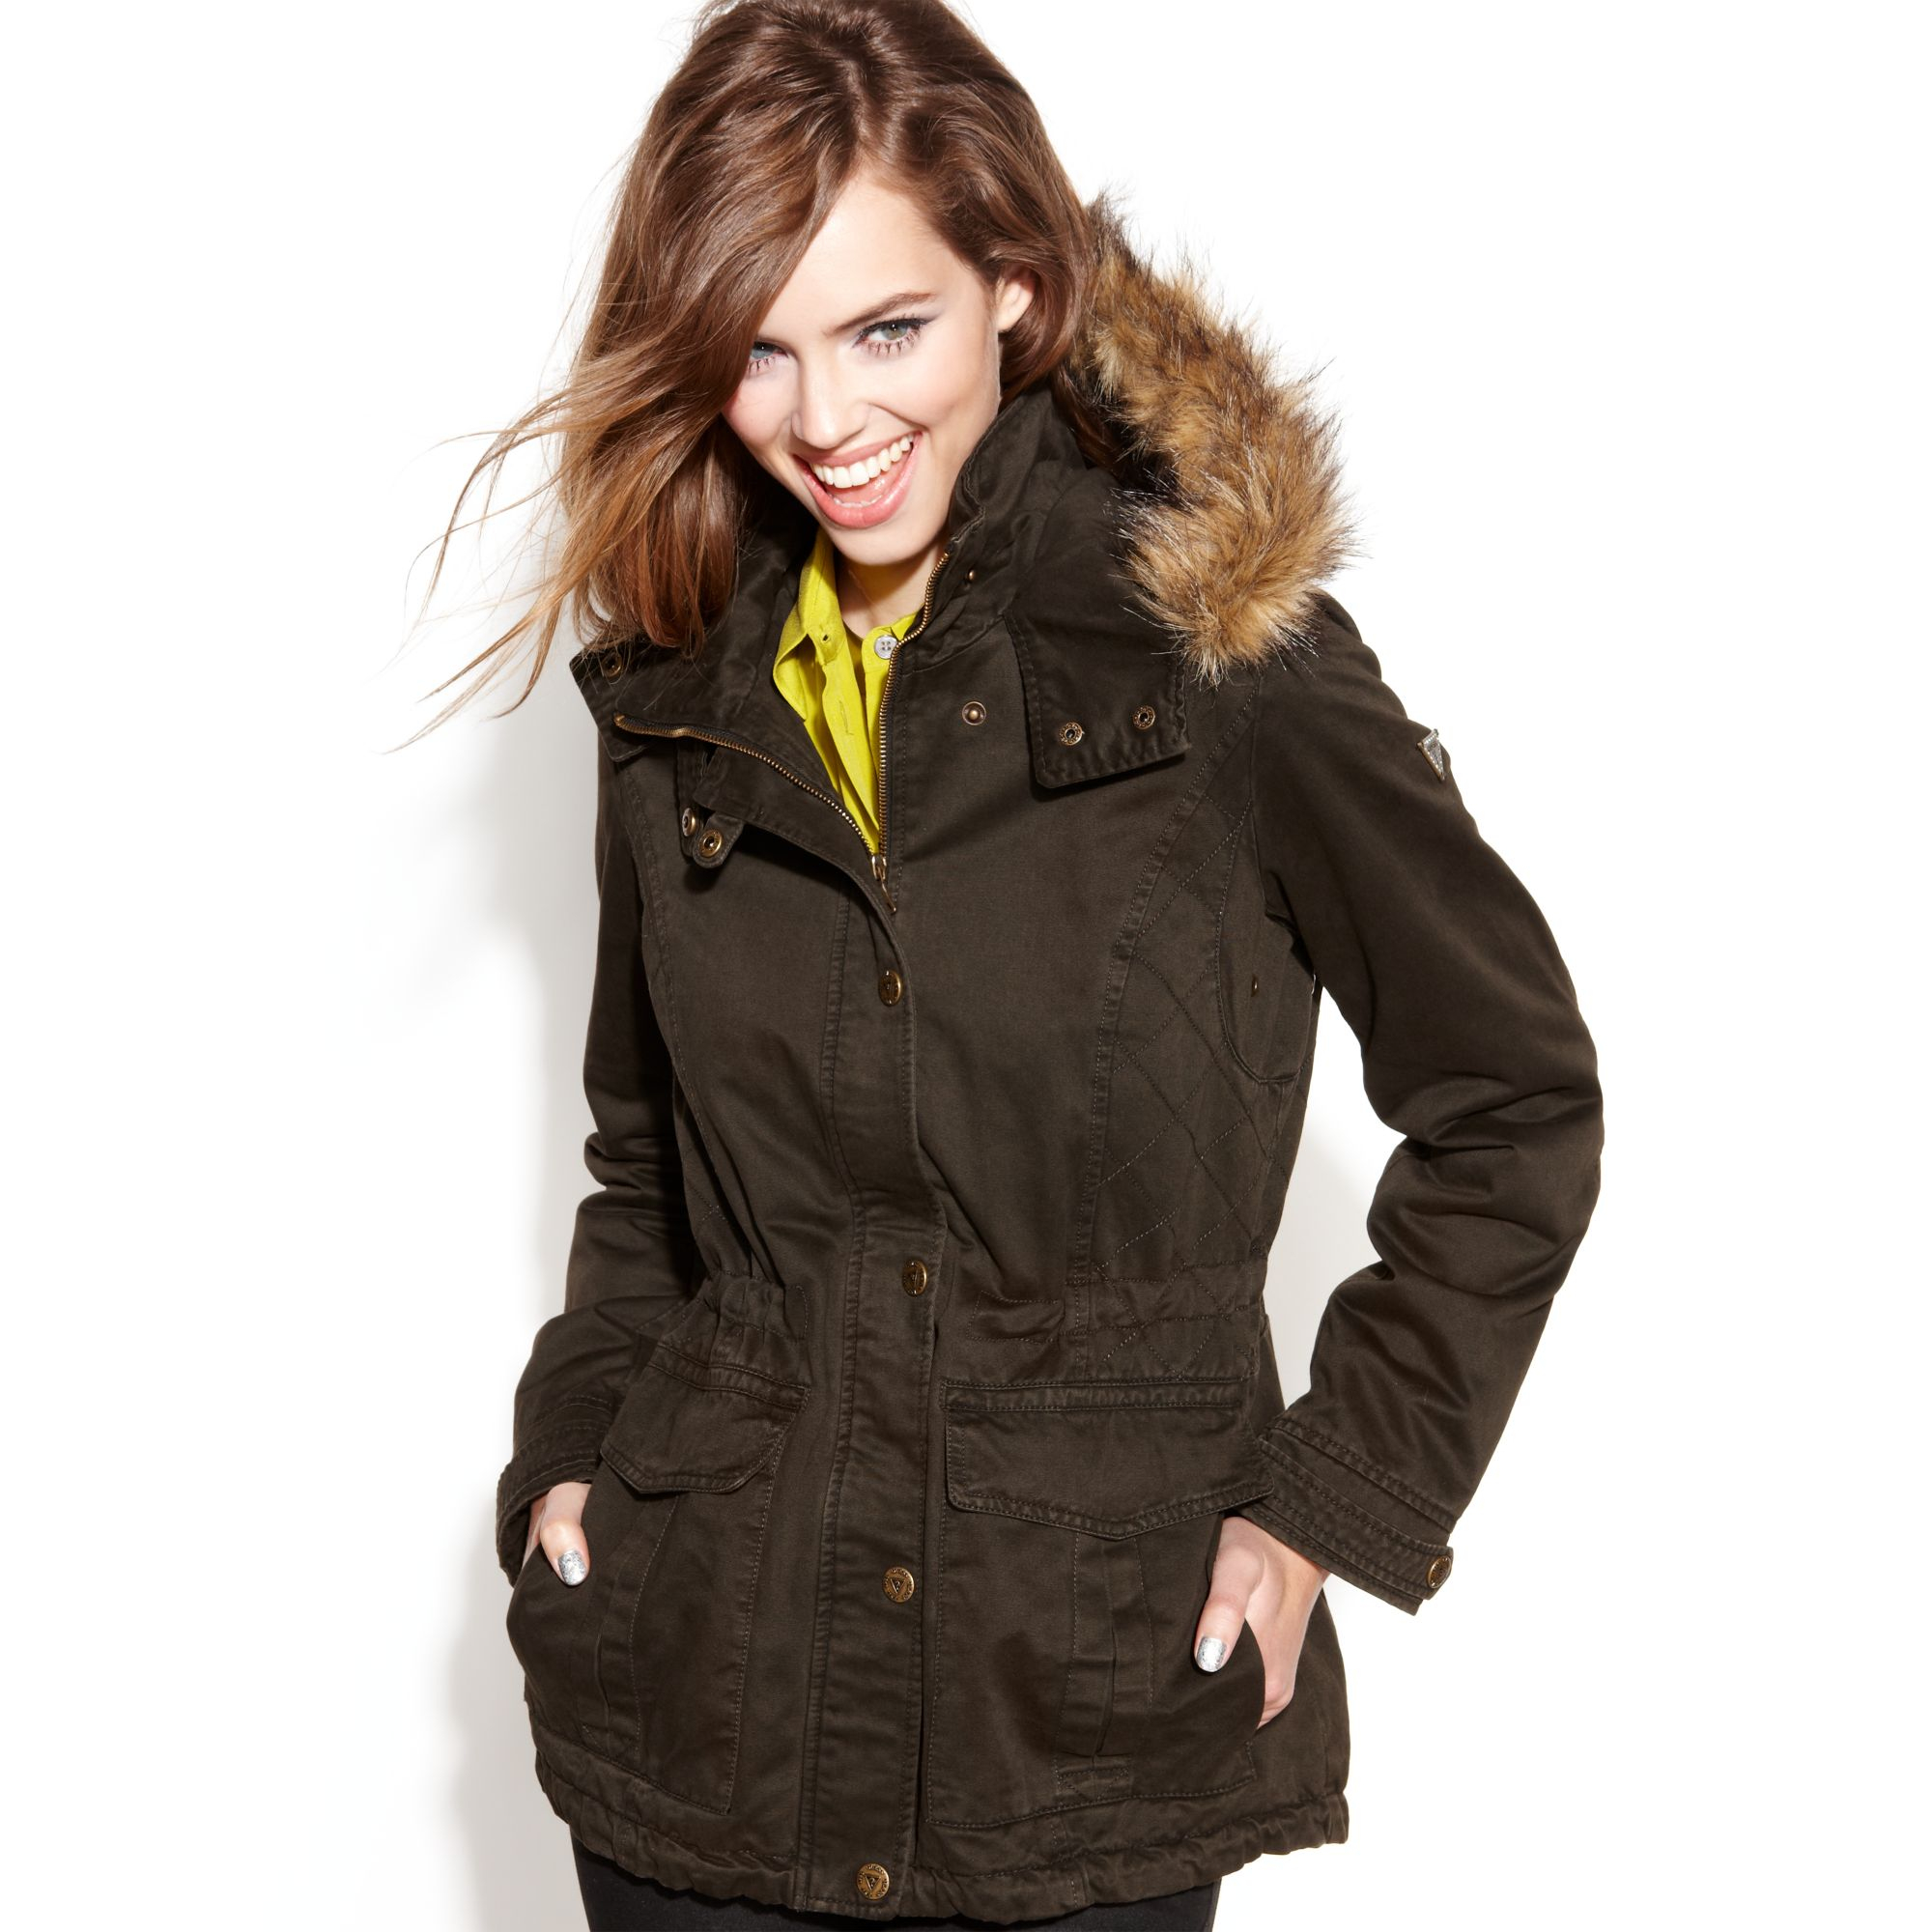 Guess winter coats for women